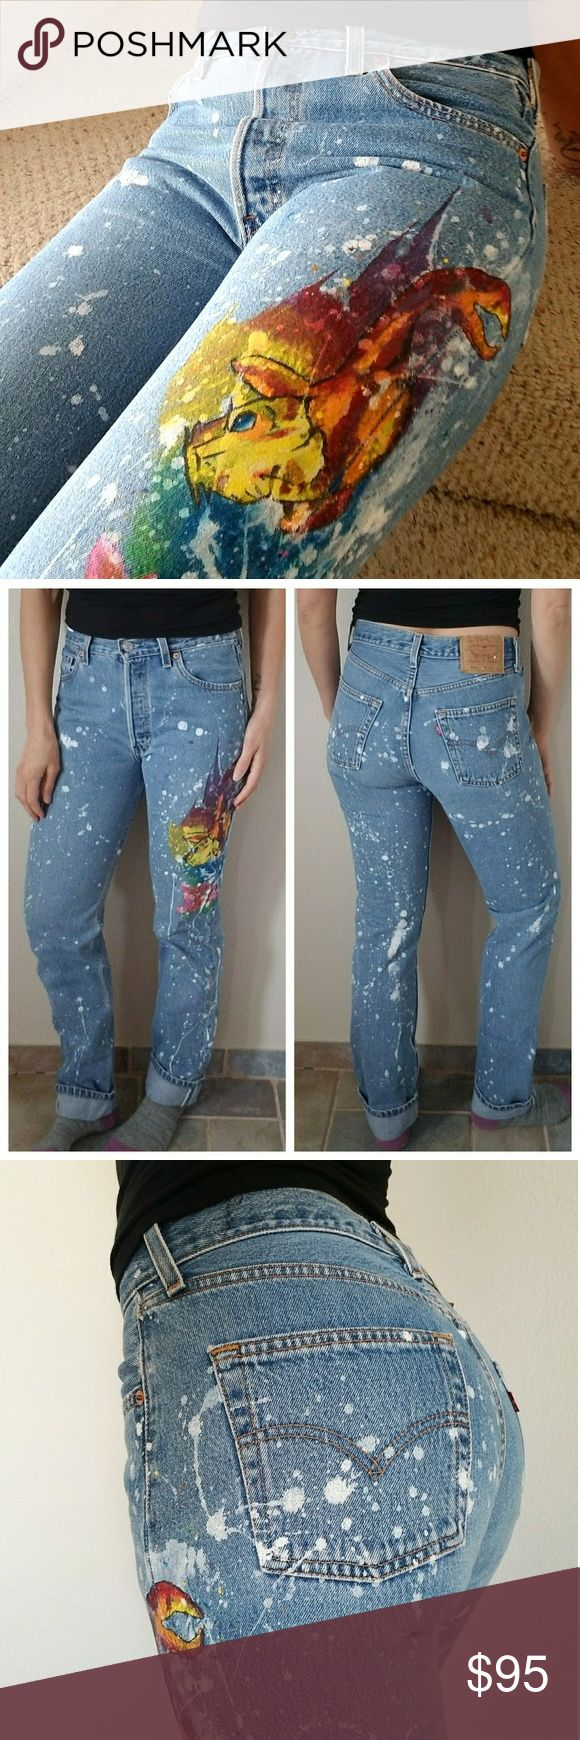 "Folktown Levi's 501 Handpainted Jeans  ONE OF A KIND! Handpainted by a local artist! Soooo amazing!! No one will ever have these jeans!! Splatter paint with cool fish sea creature! Incredible abstract art! Don't miss out of these!  Waistband measurement - 15"" Inseam - 34"" Rise - 11"" Levi's Jeans"